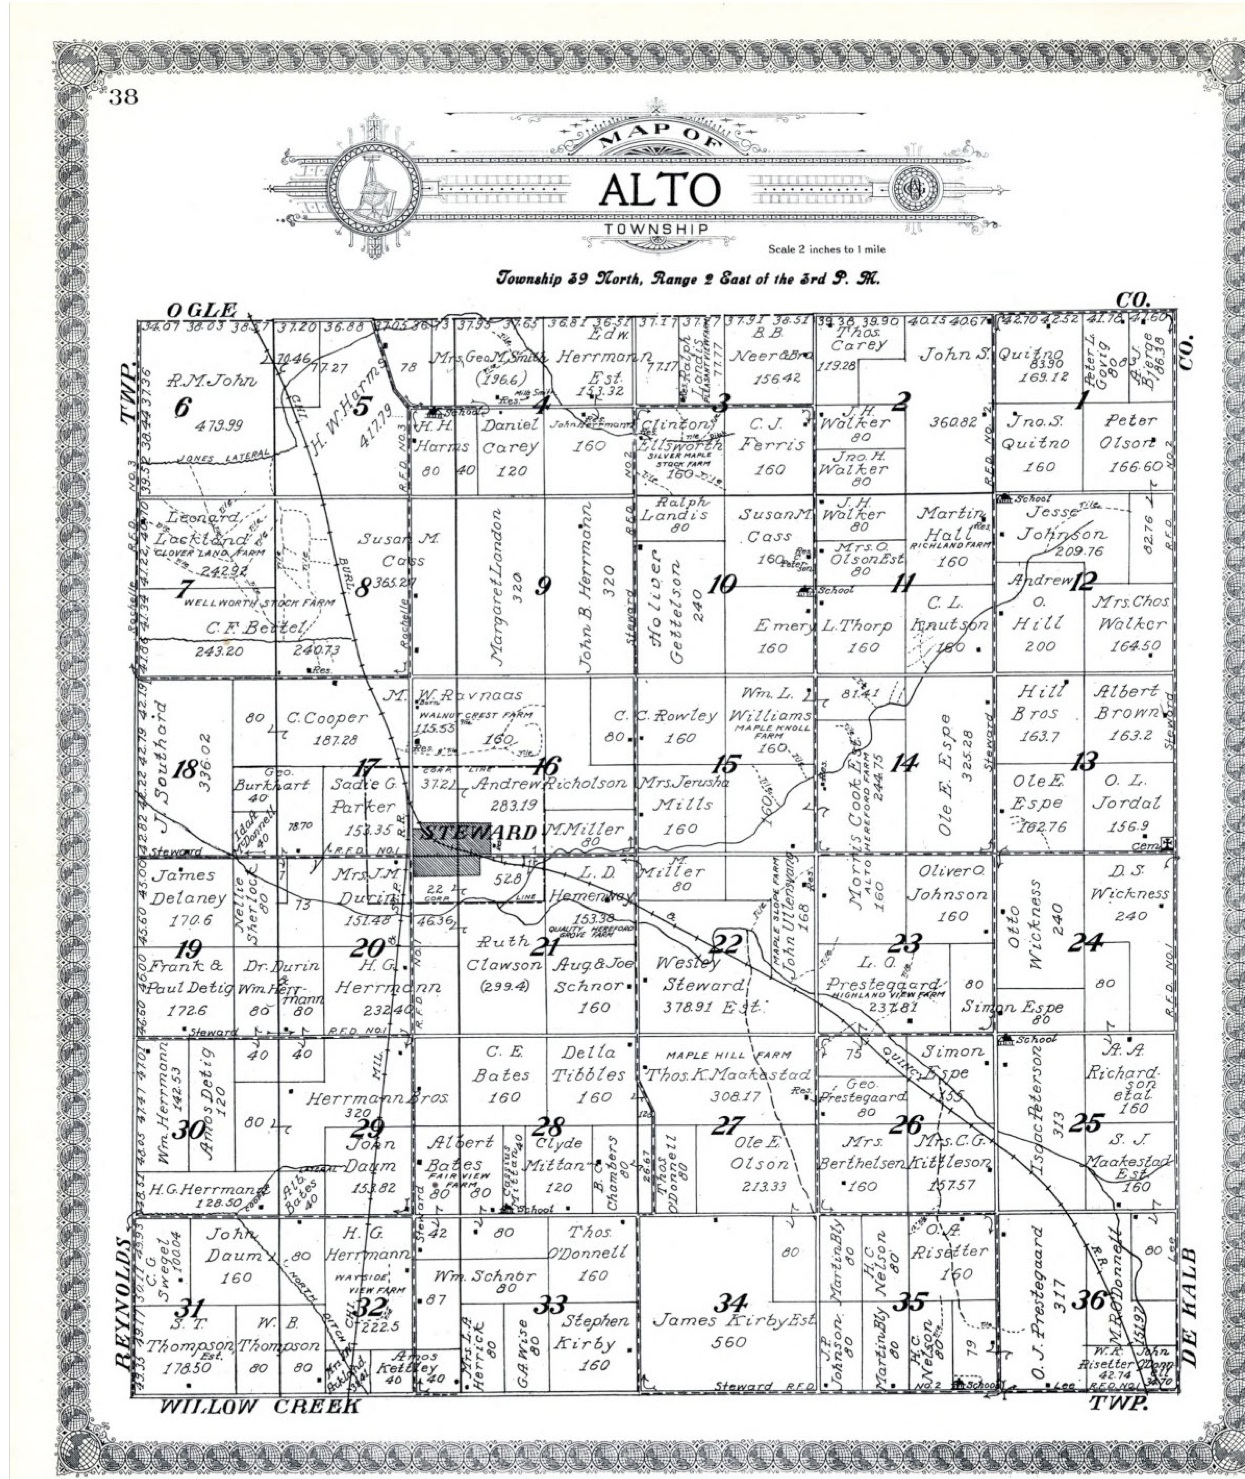 Illinois lee county lee - Here Is The 1921 Plat Map For Alto Township Lee County Illinois